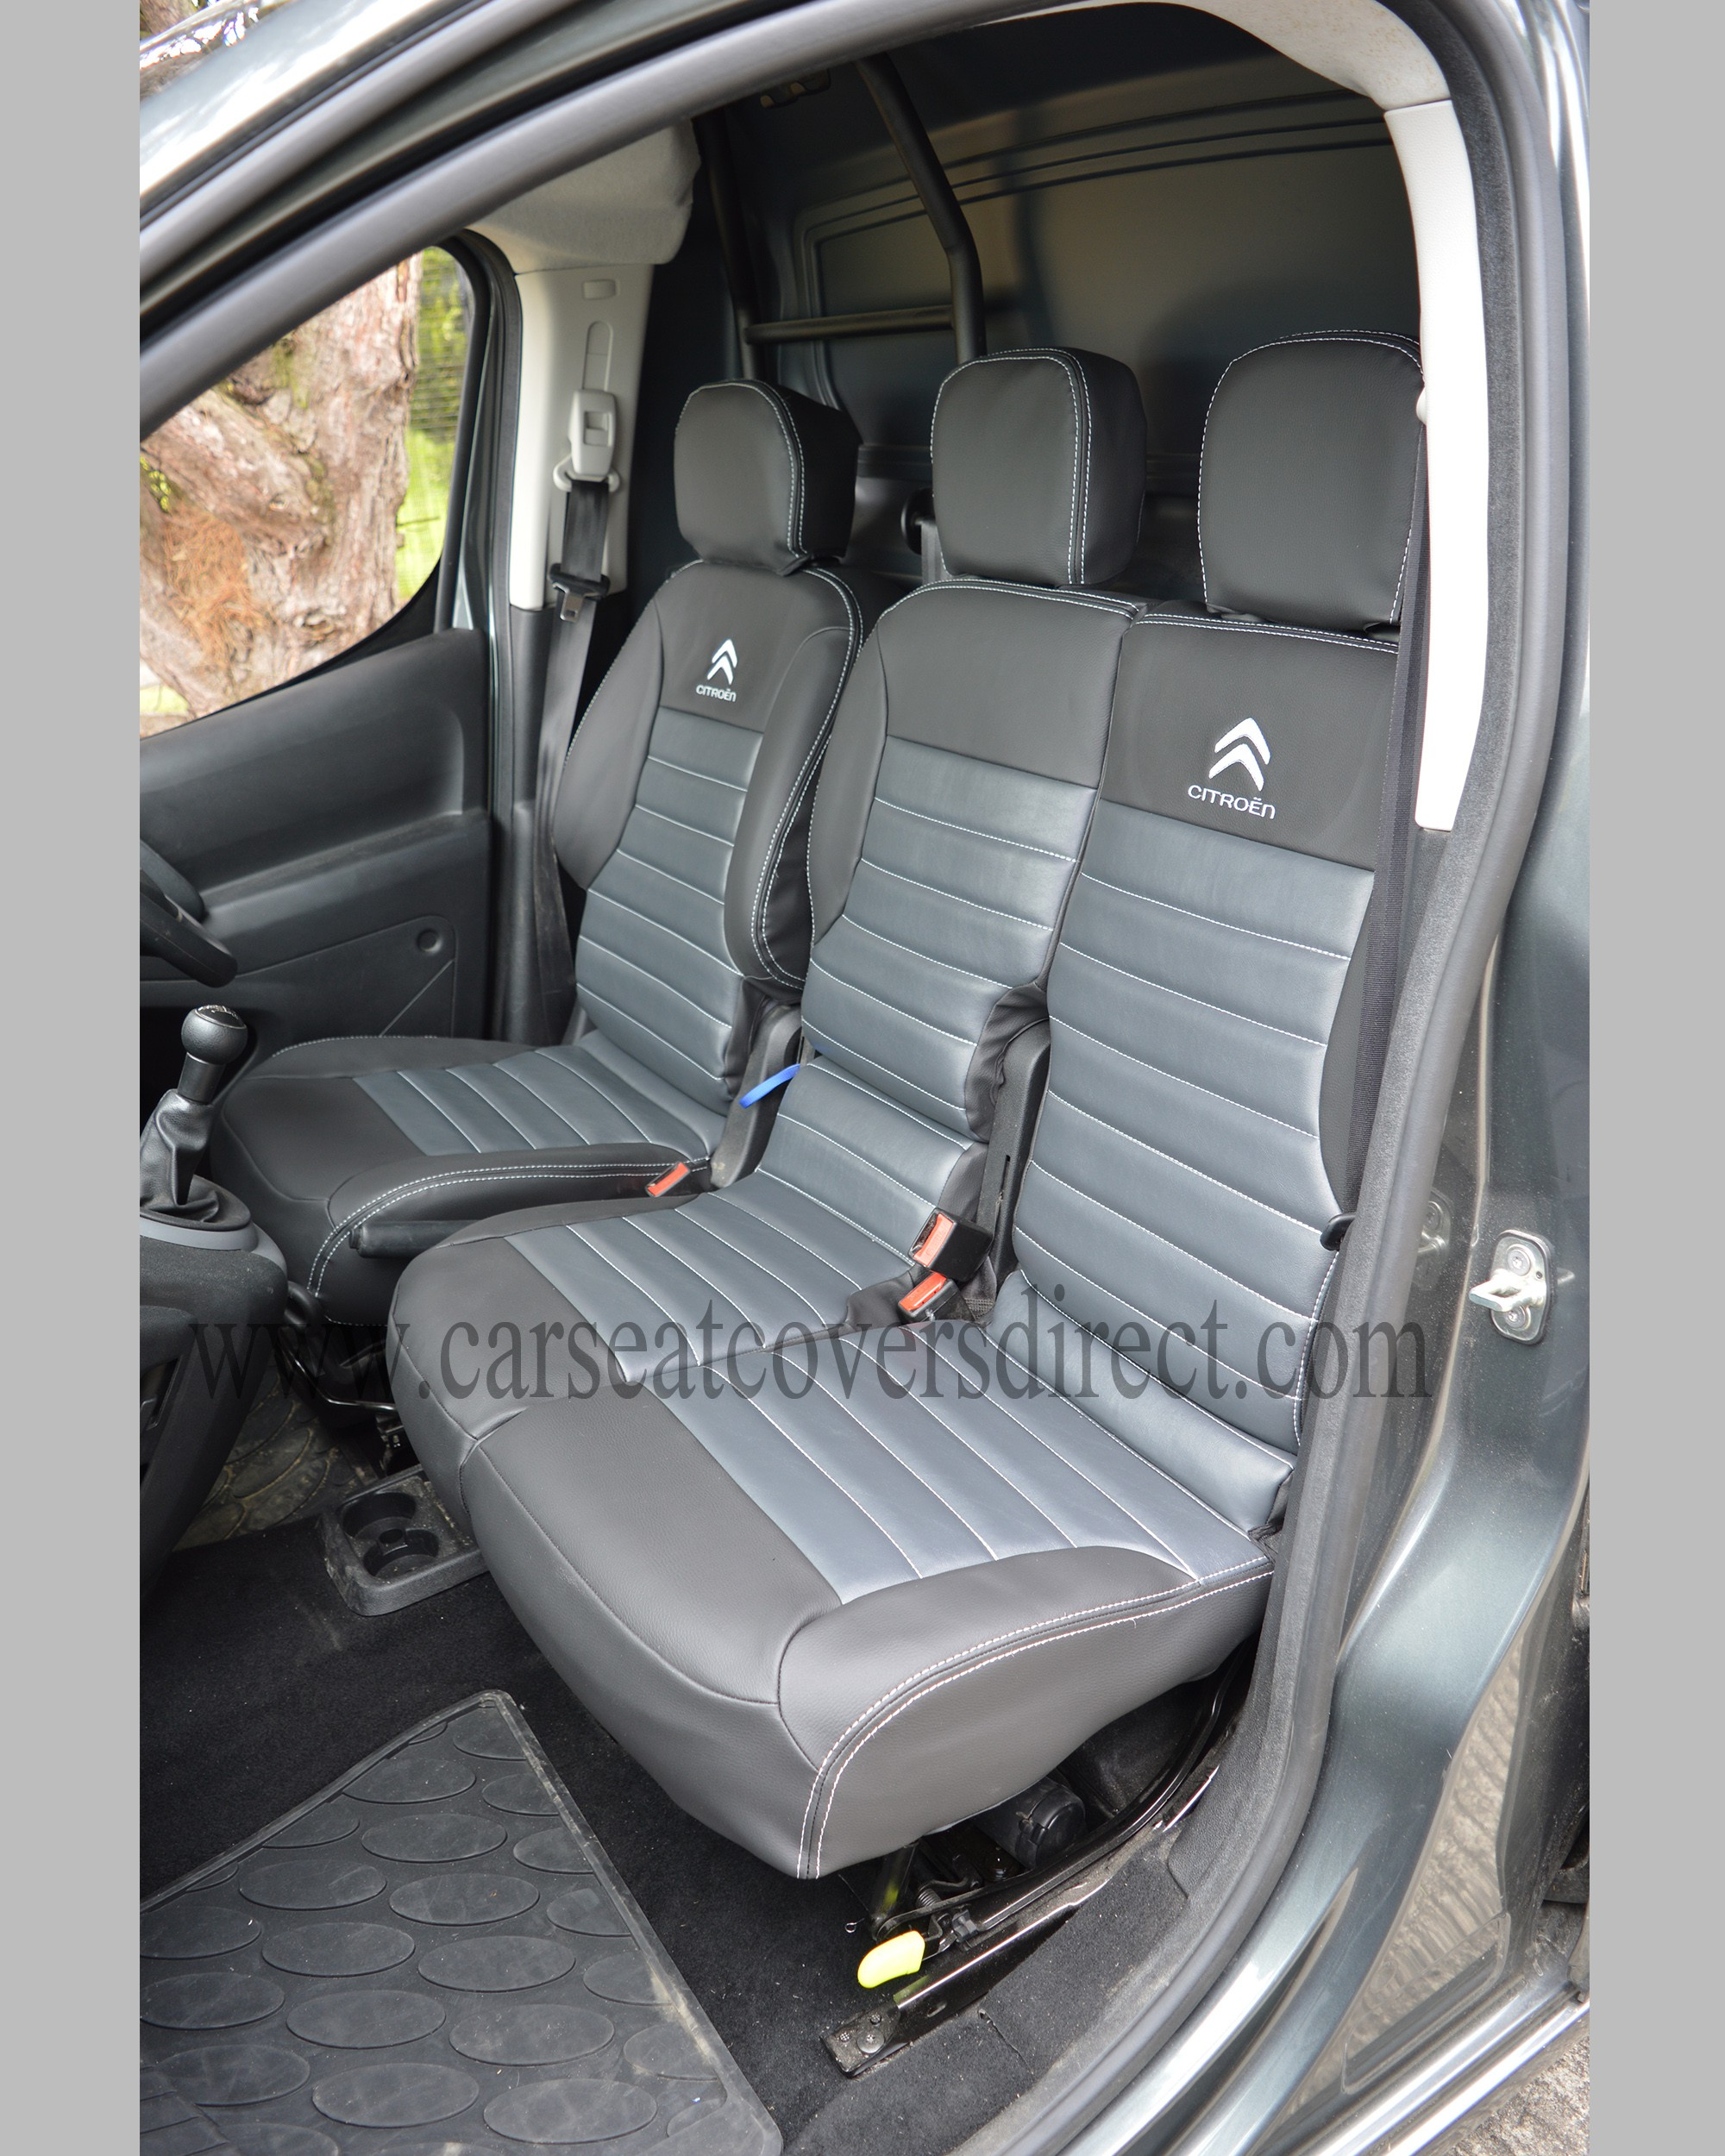 citroen berlingo tailored quilted seat covers charcoal pewter grey logos car seat covers. Black Bedroom Furniture Sets. Home Design Ideas